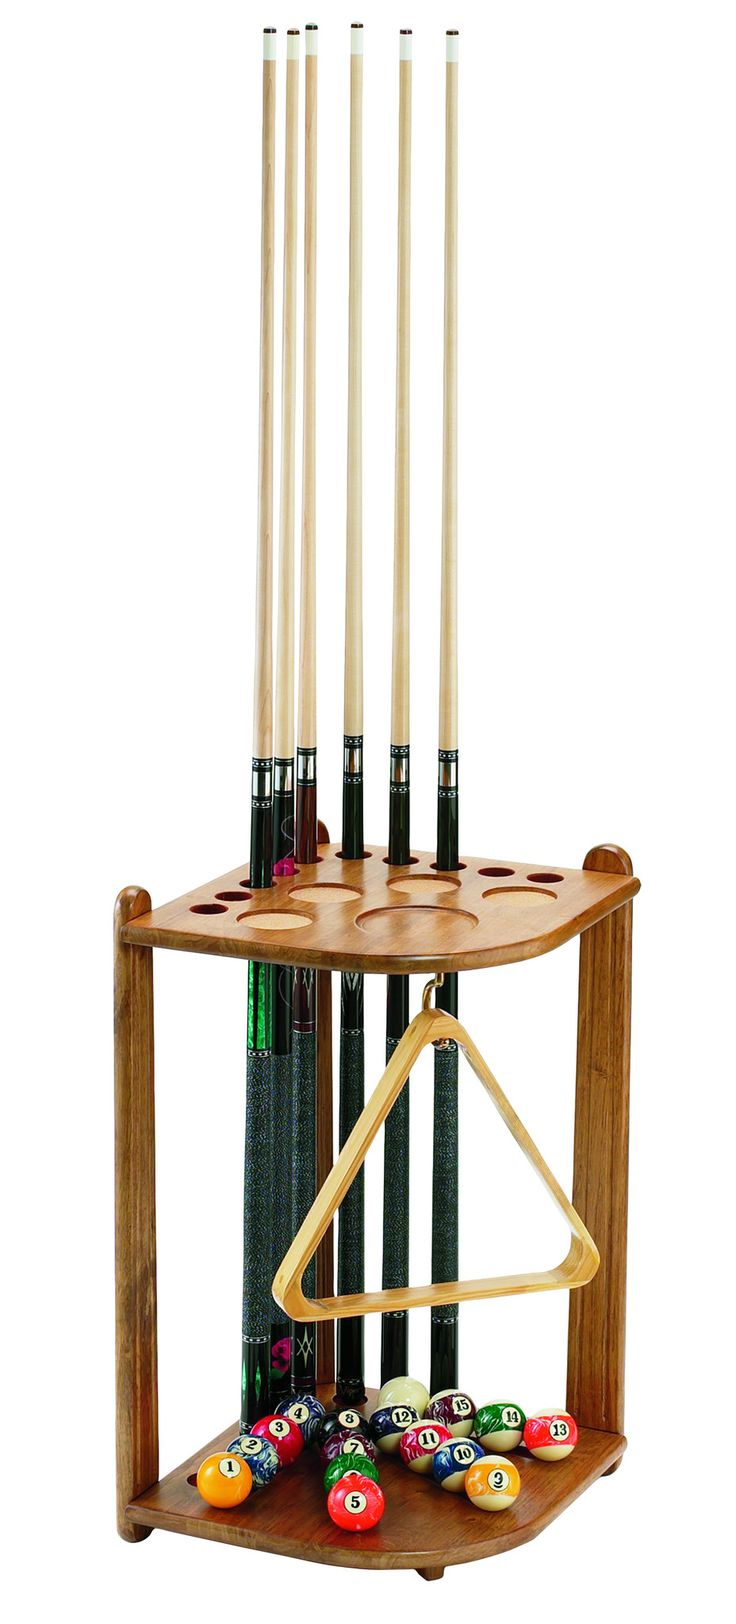 Oak Wood 10 Cue Corner Pool Cue Rack